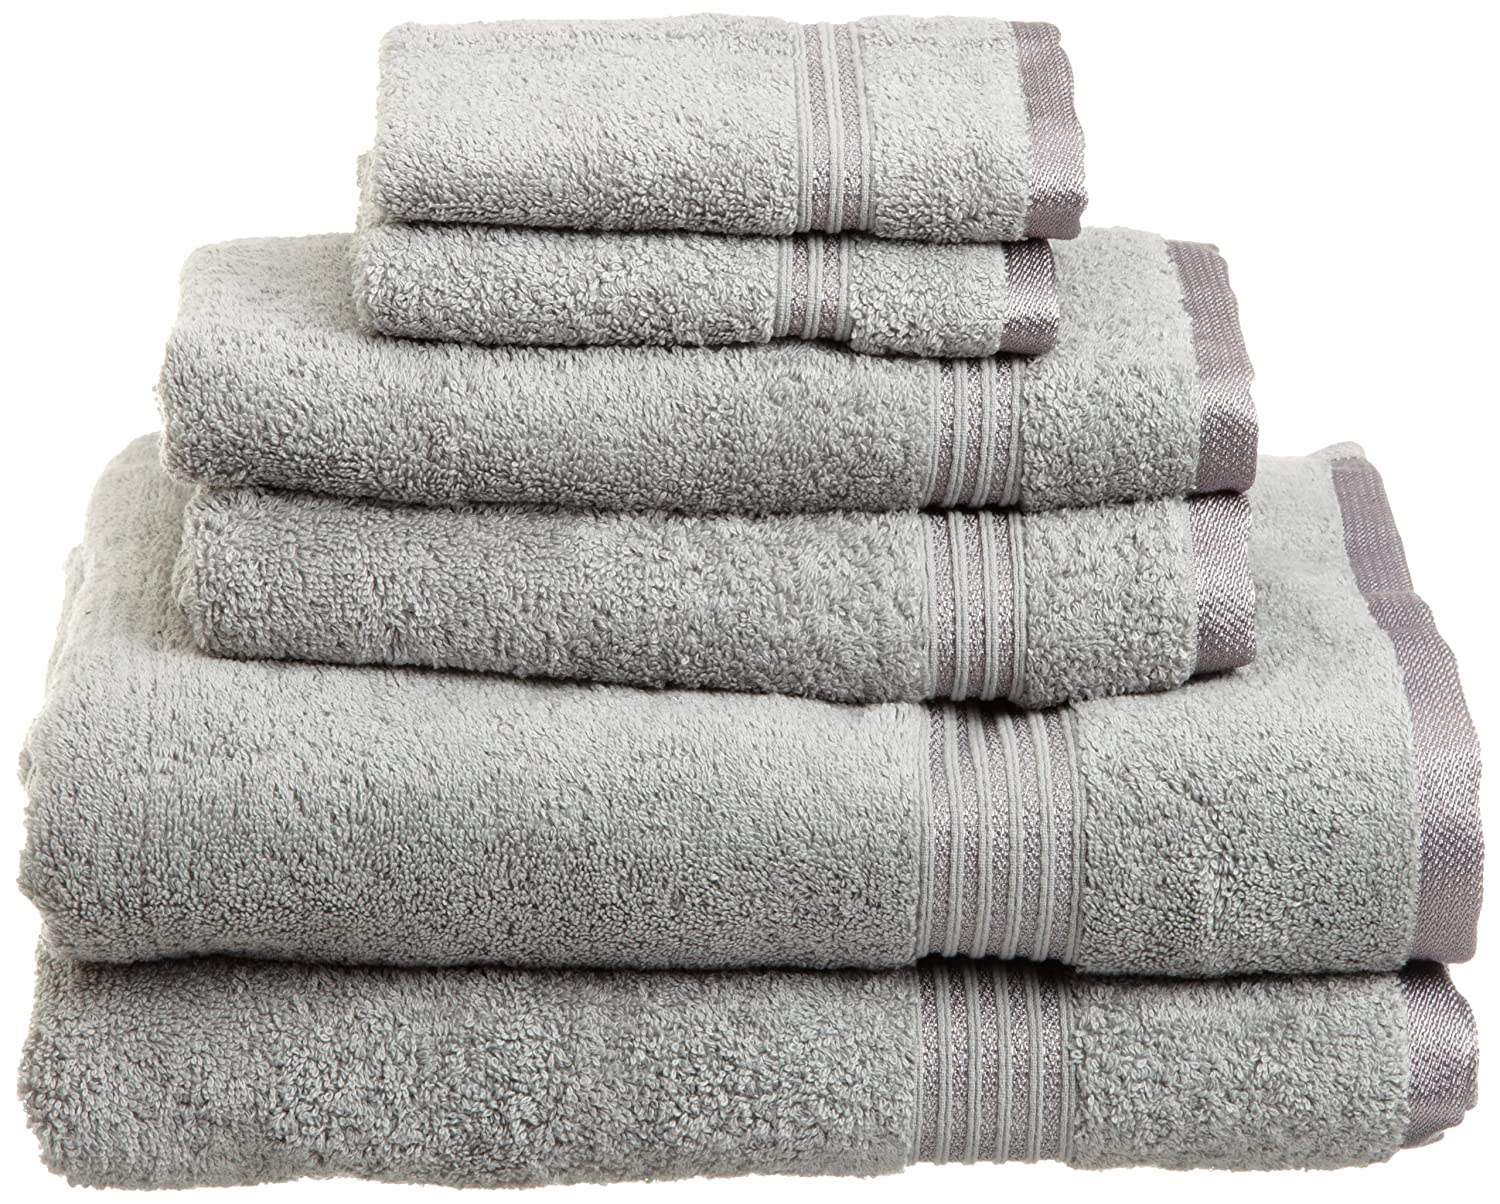 Superior Egyptian Cotton 6-Piece Towel Set, Silver